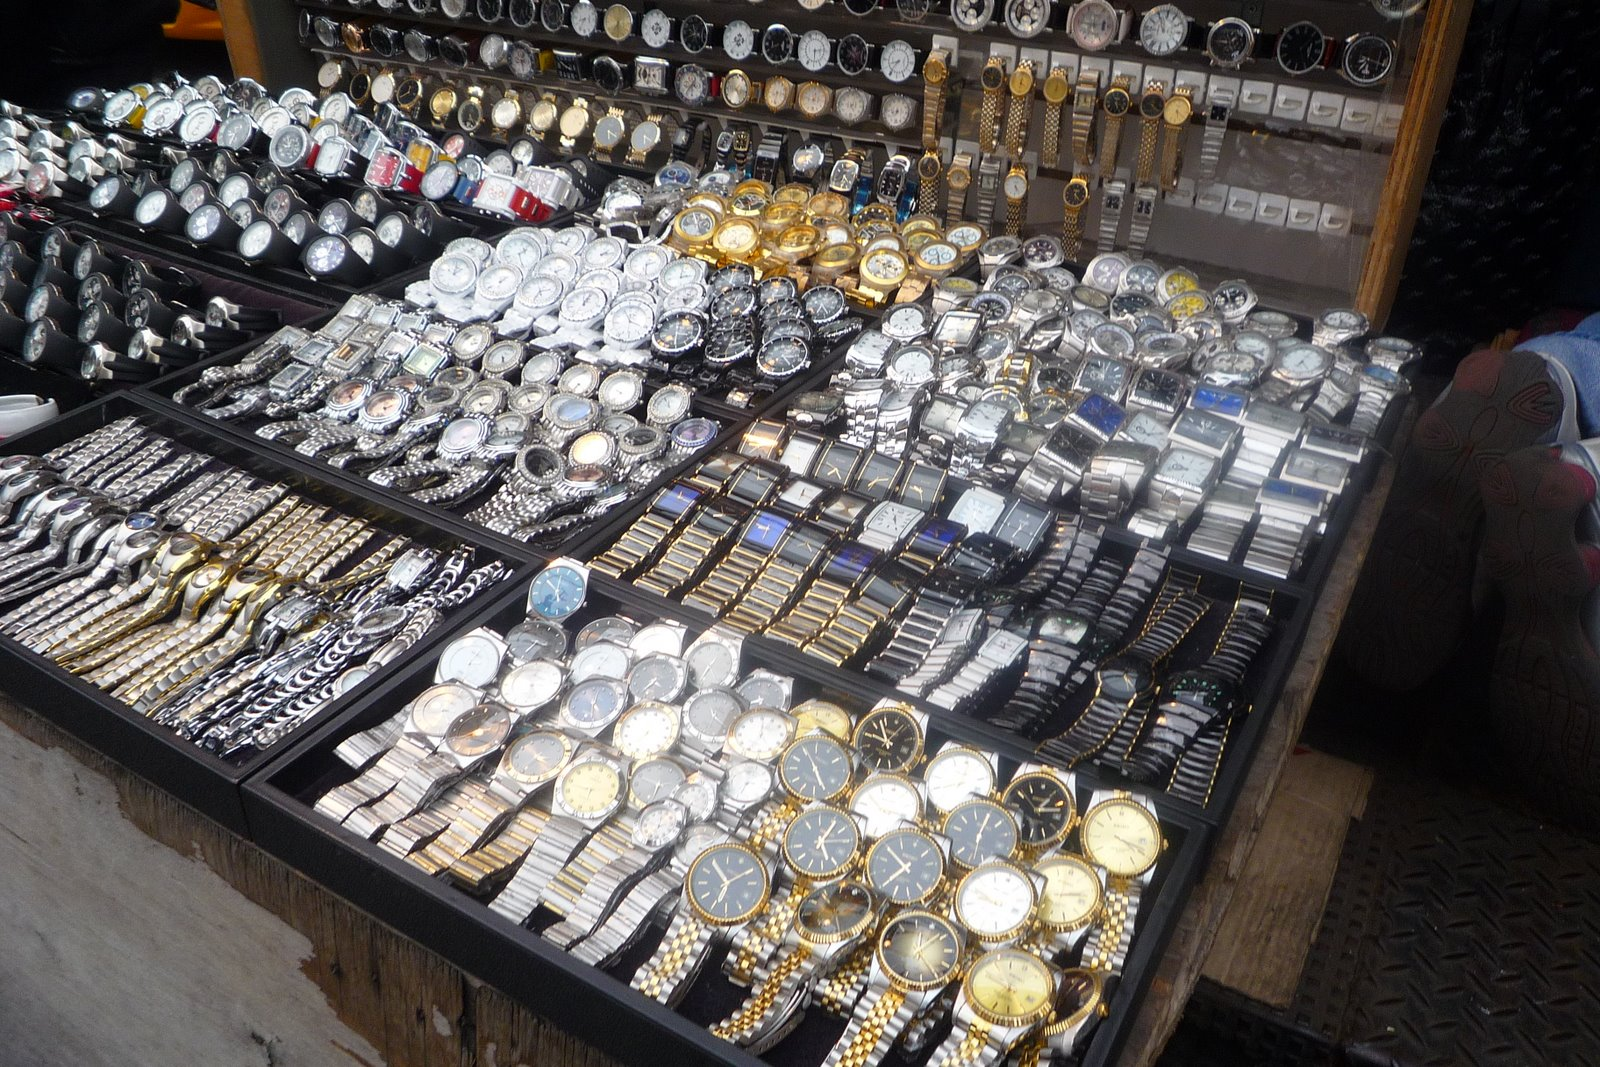 f19a1046a387 ... array of counterfeit watches on Canal Street. They have all the fake  stuff there. A lot of it is now hidden away